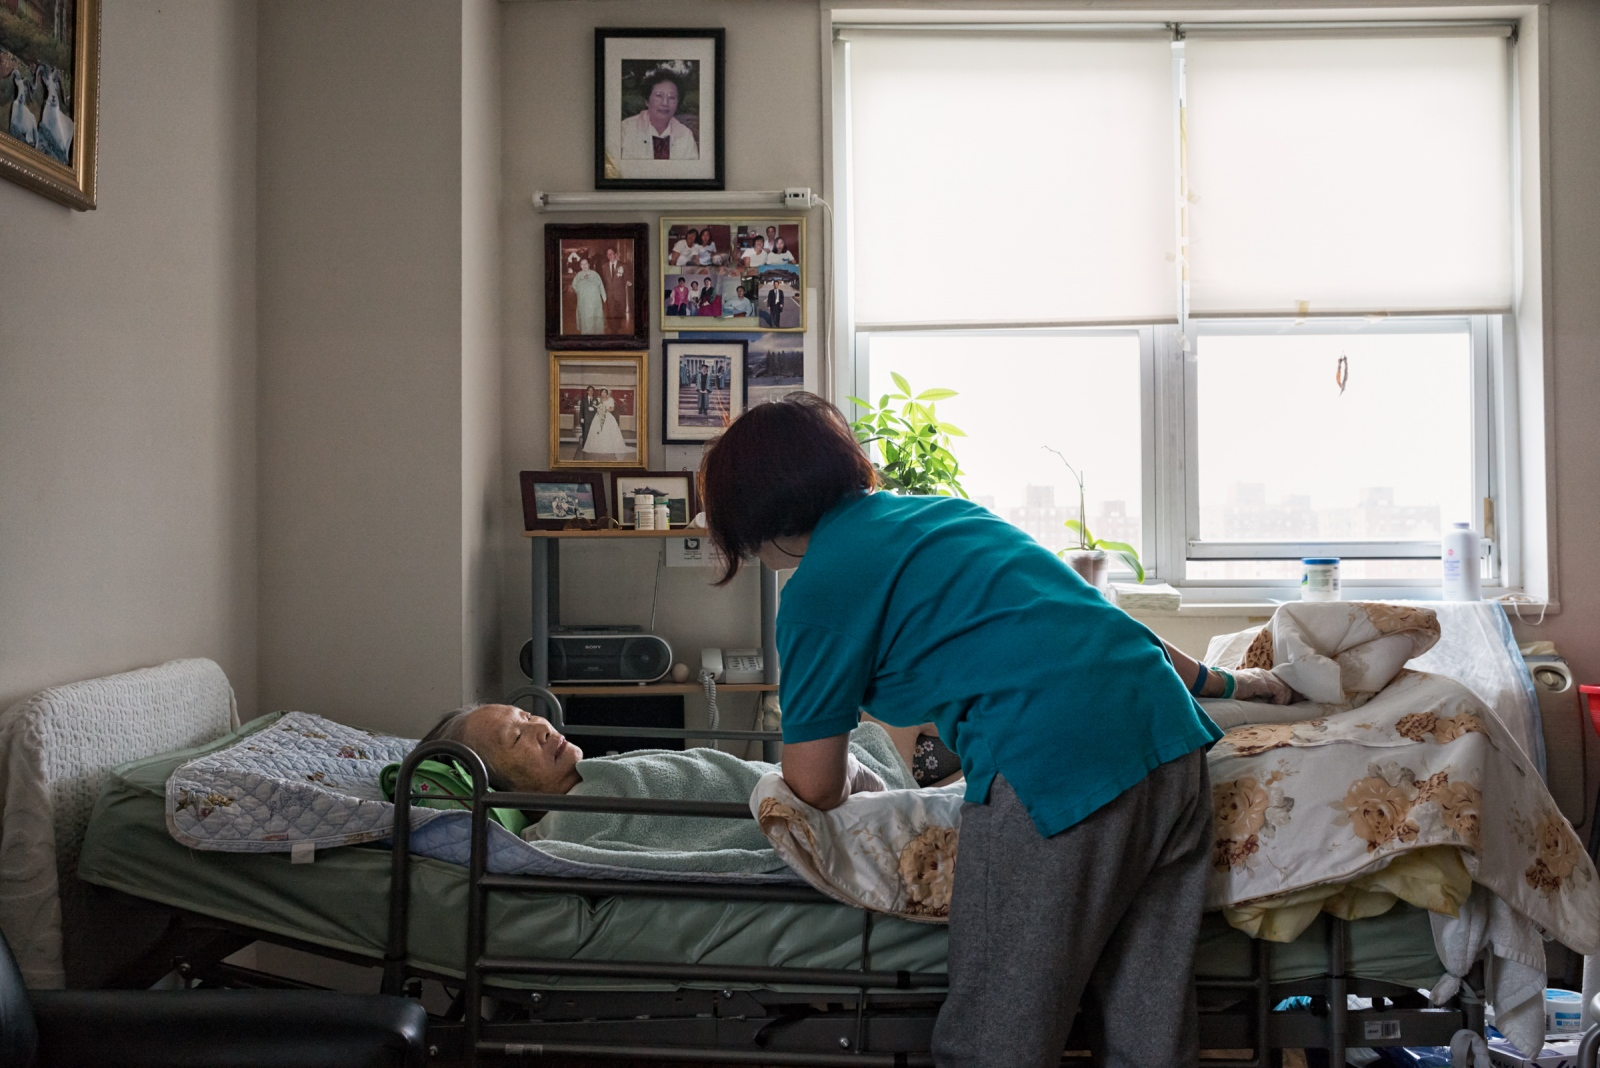 Art and Documentary Photography - Loading Hillman_Nursing_Immigrant Caregive_LoRes_10.jpg